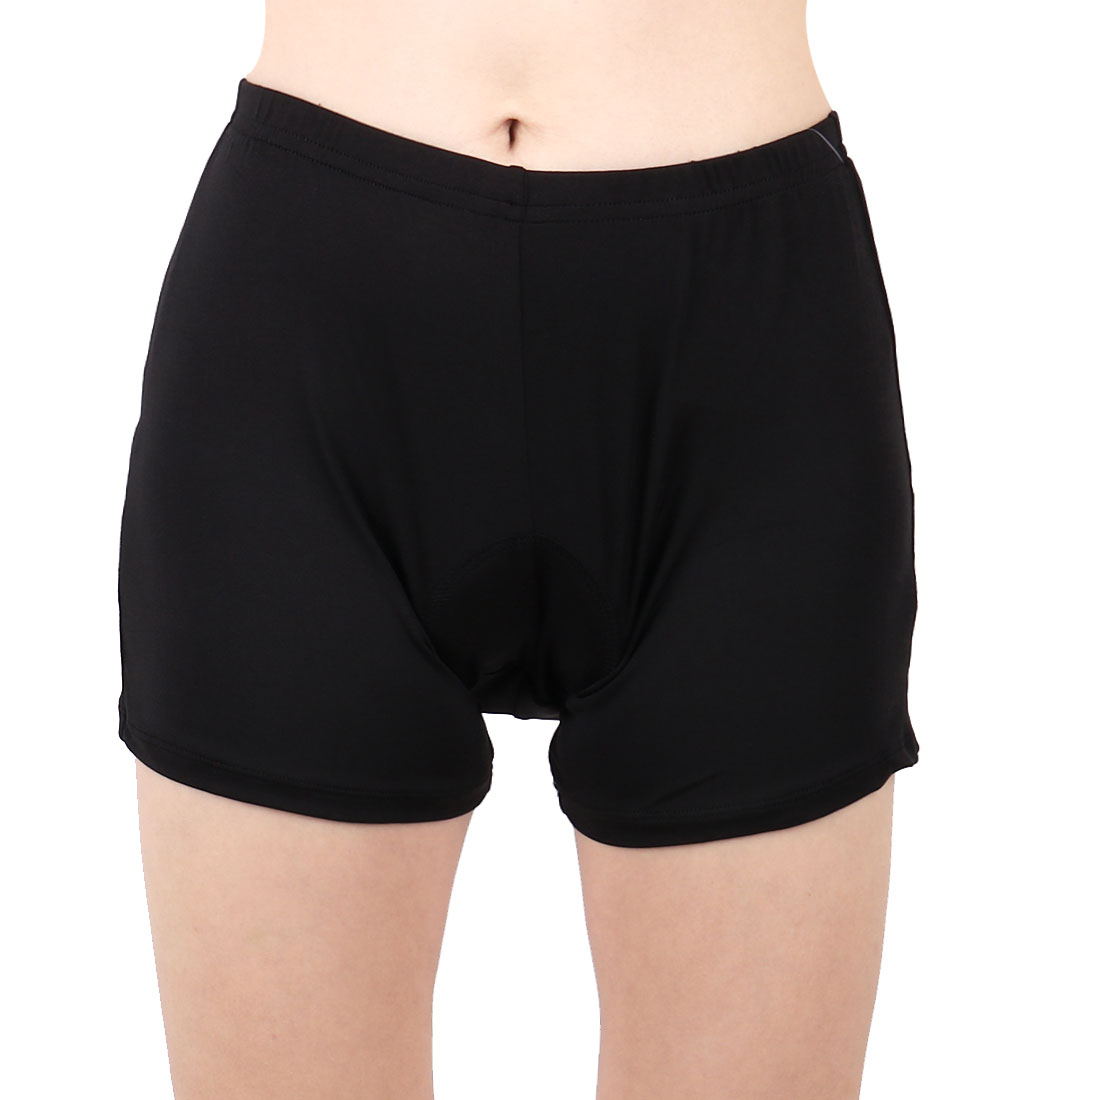 Women Polyester Outdoor Riding Bicycle Biking Underpants Cycling Shorts Black XL/M (US 6)